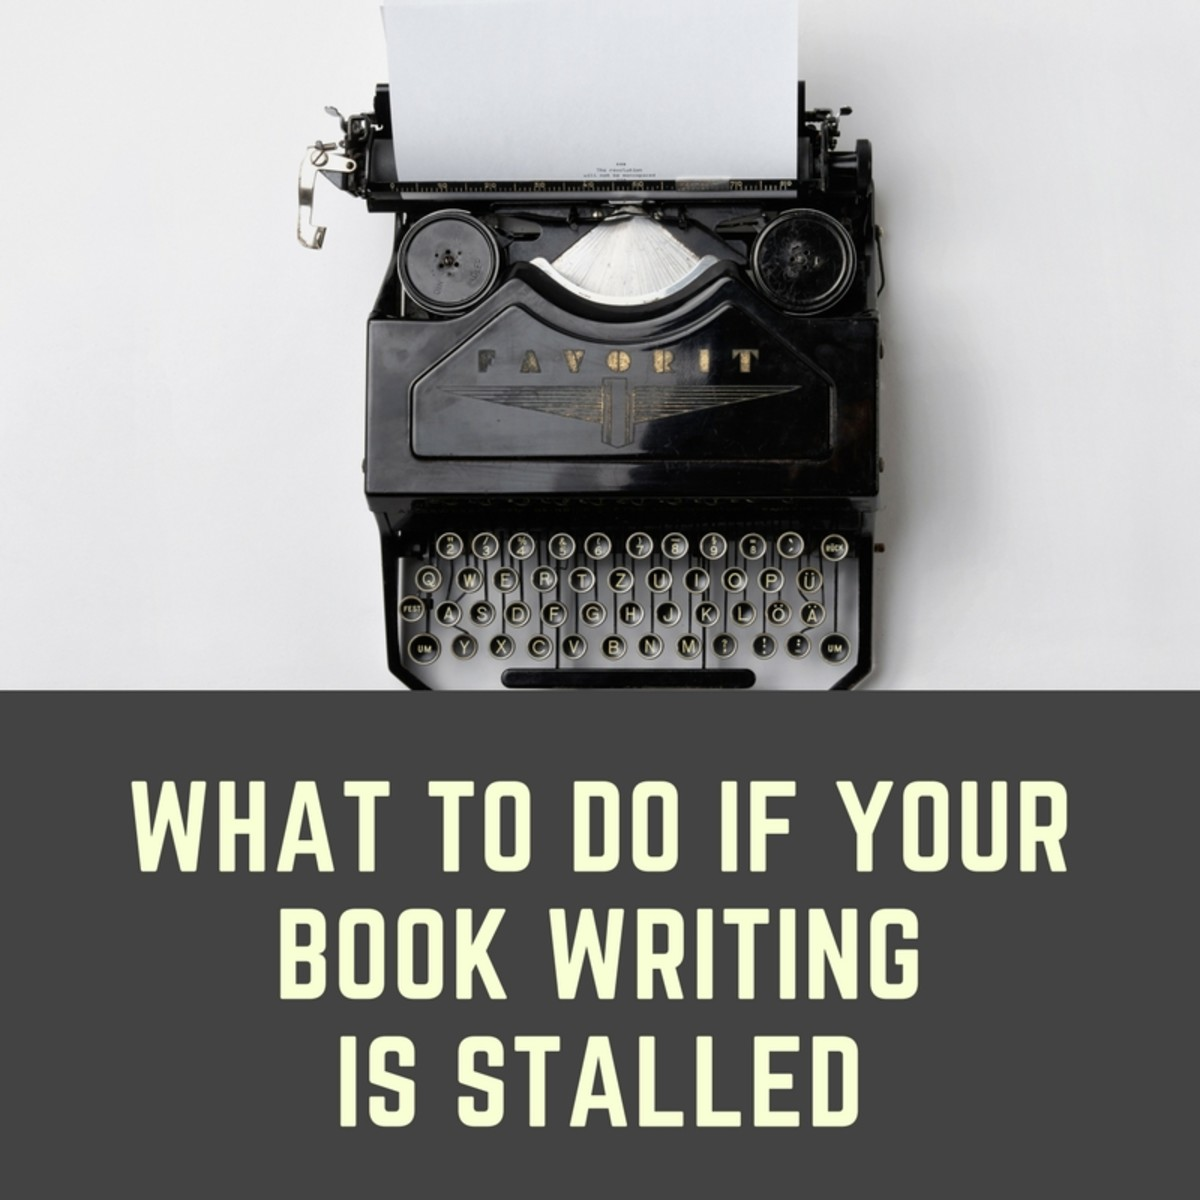 What to Do If Your Book Writing Project Is Stalled